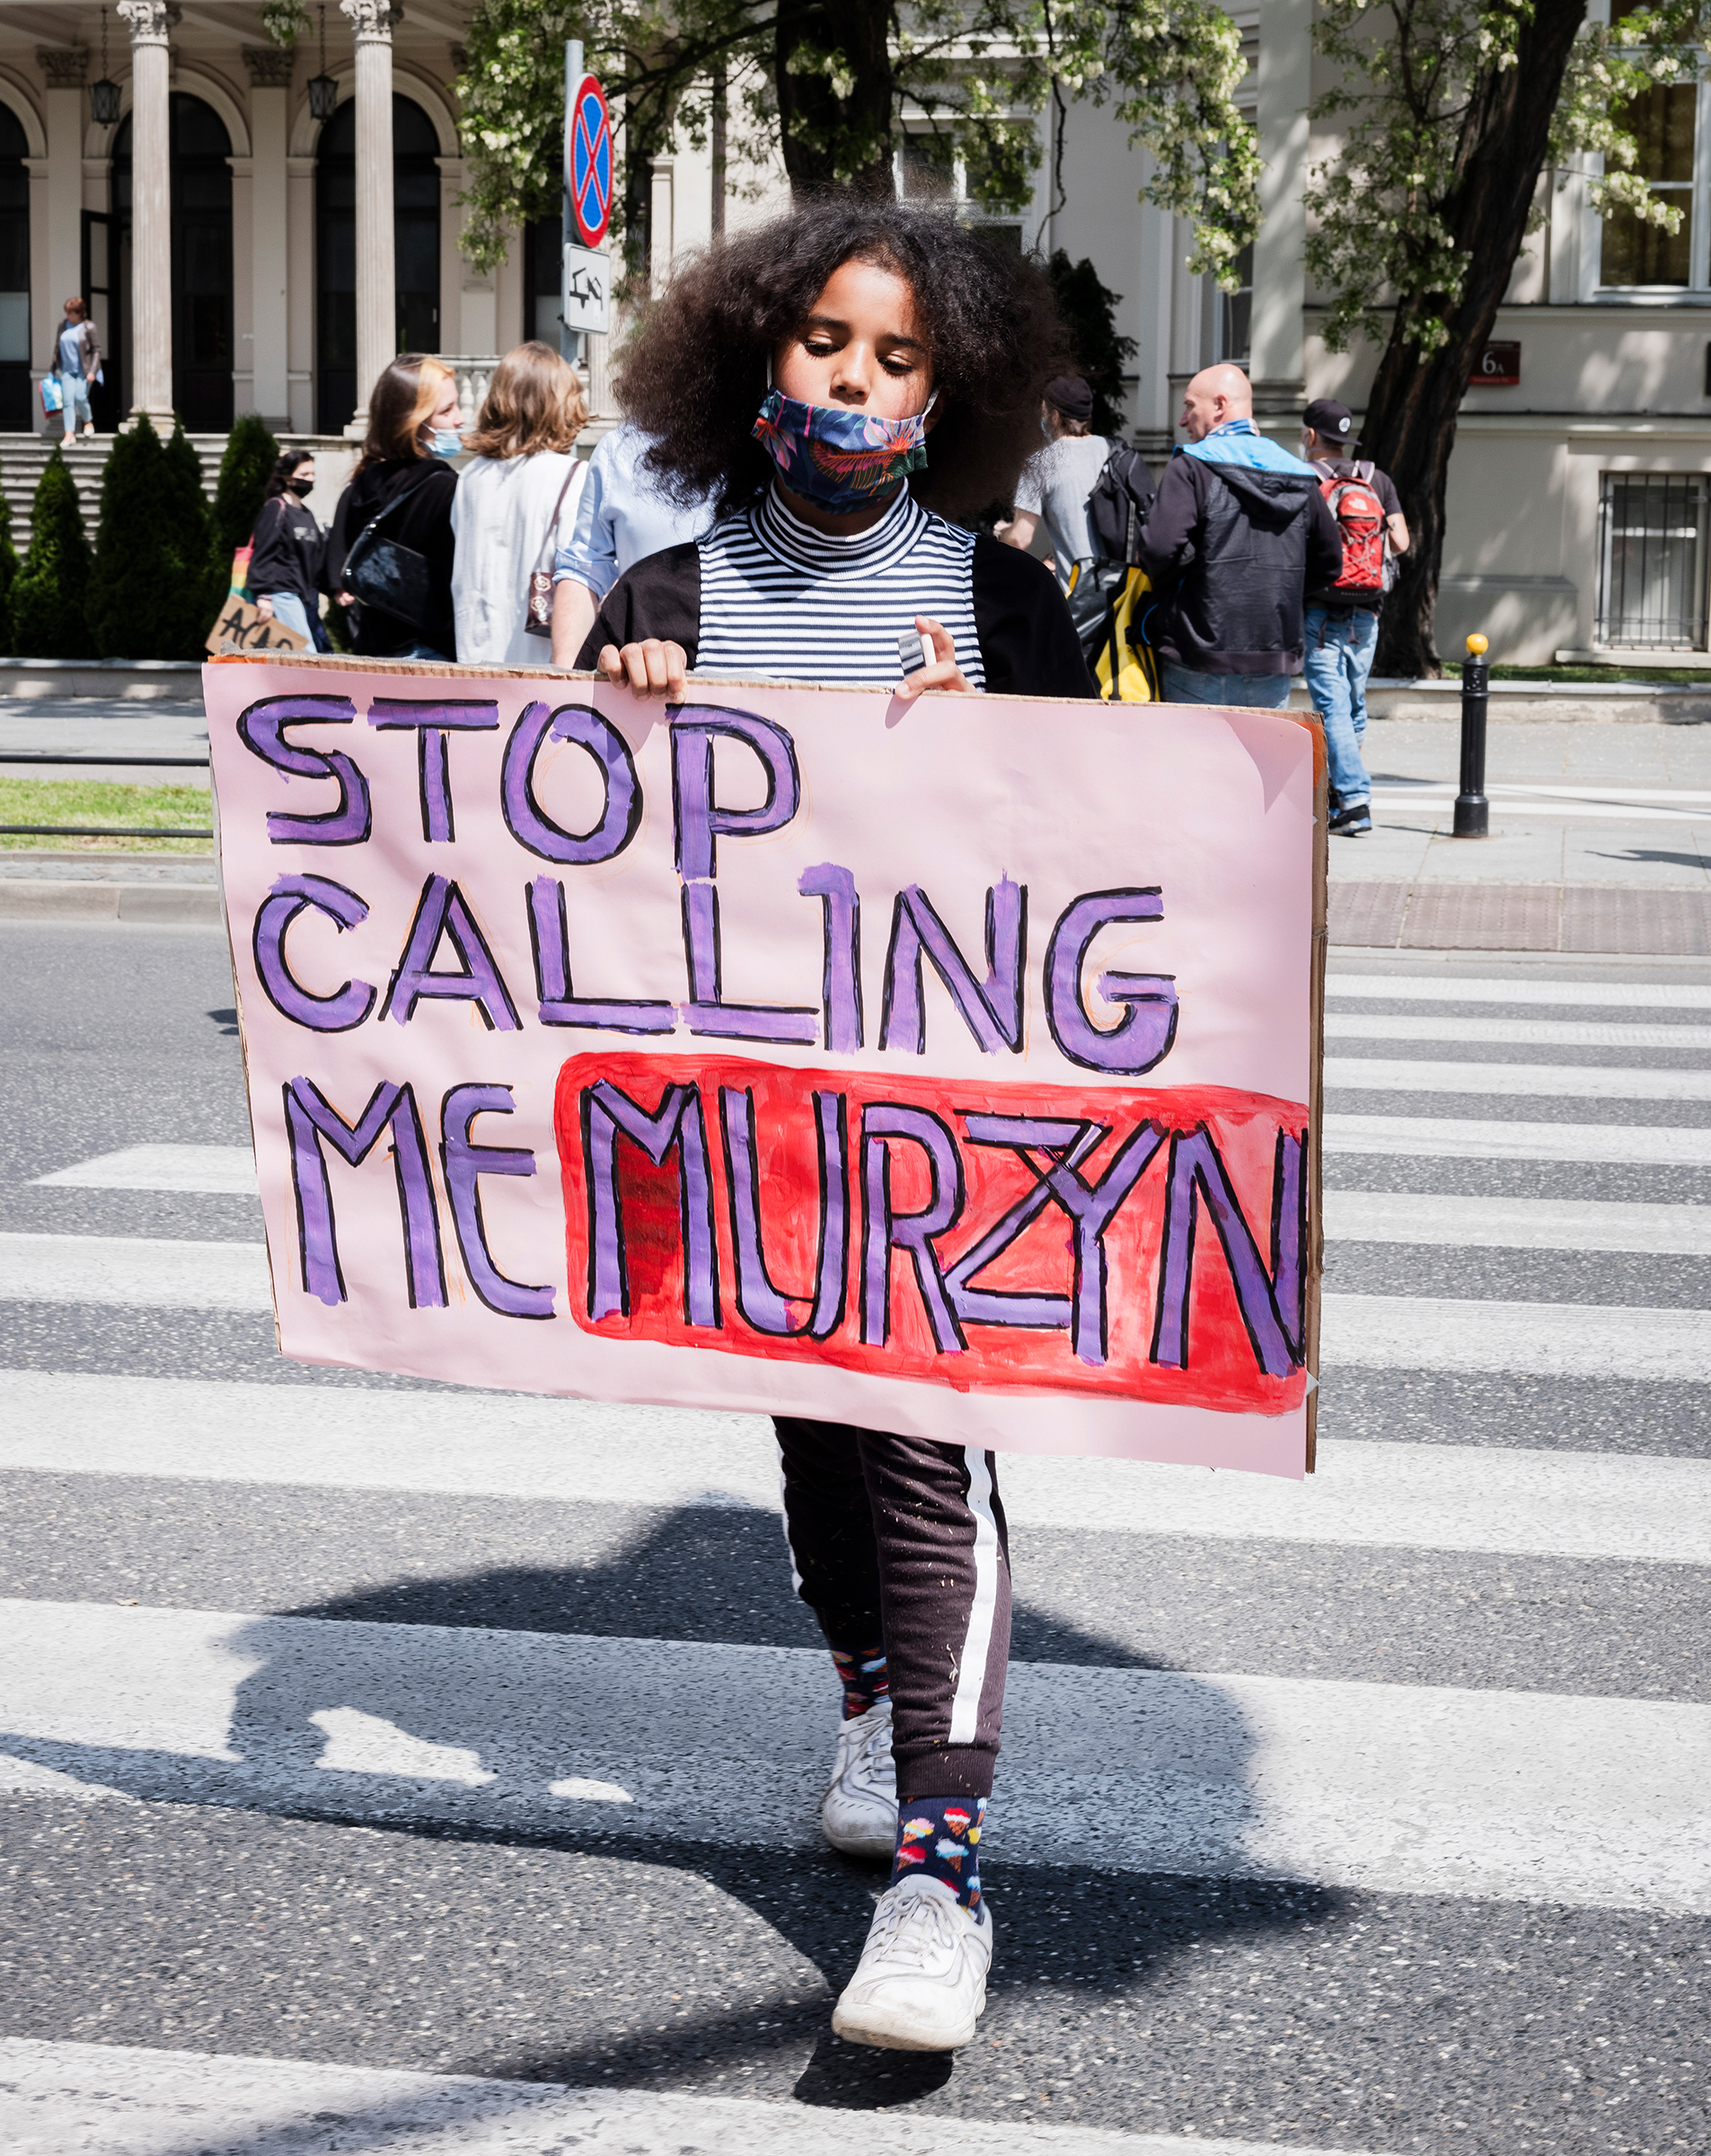 Bianka Nwolisa walks with a sign  Stop Calling Me Murzyn,  during a protest against police brutality in the wake of George Floyd's killing, in Warsaw on June 4, 2020.